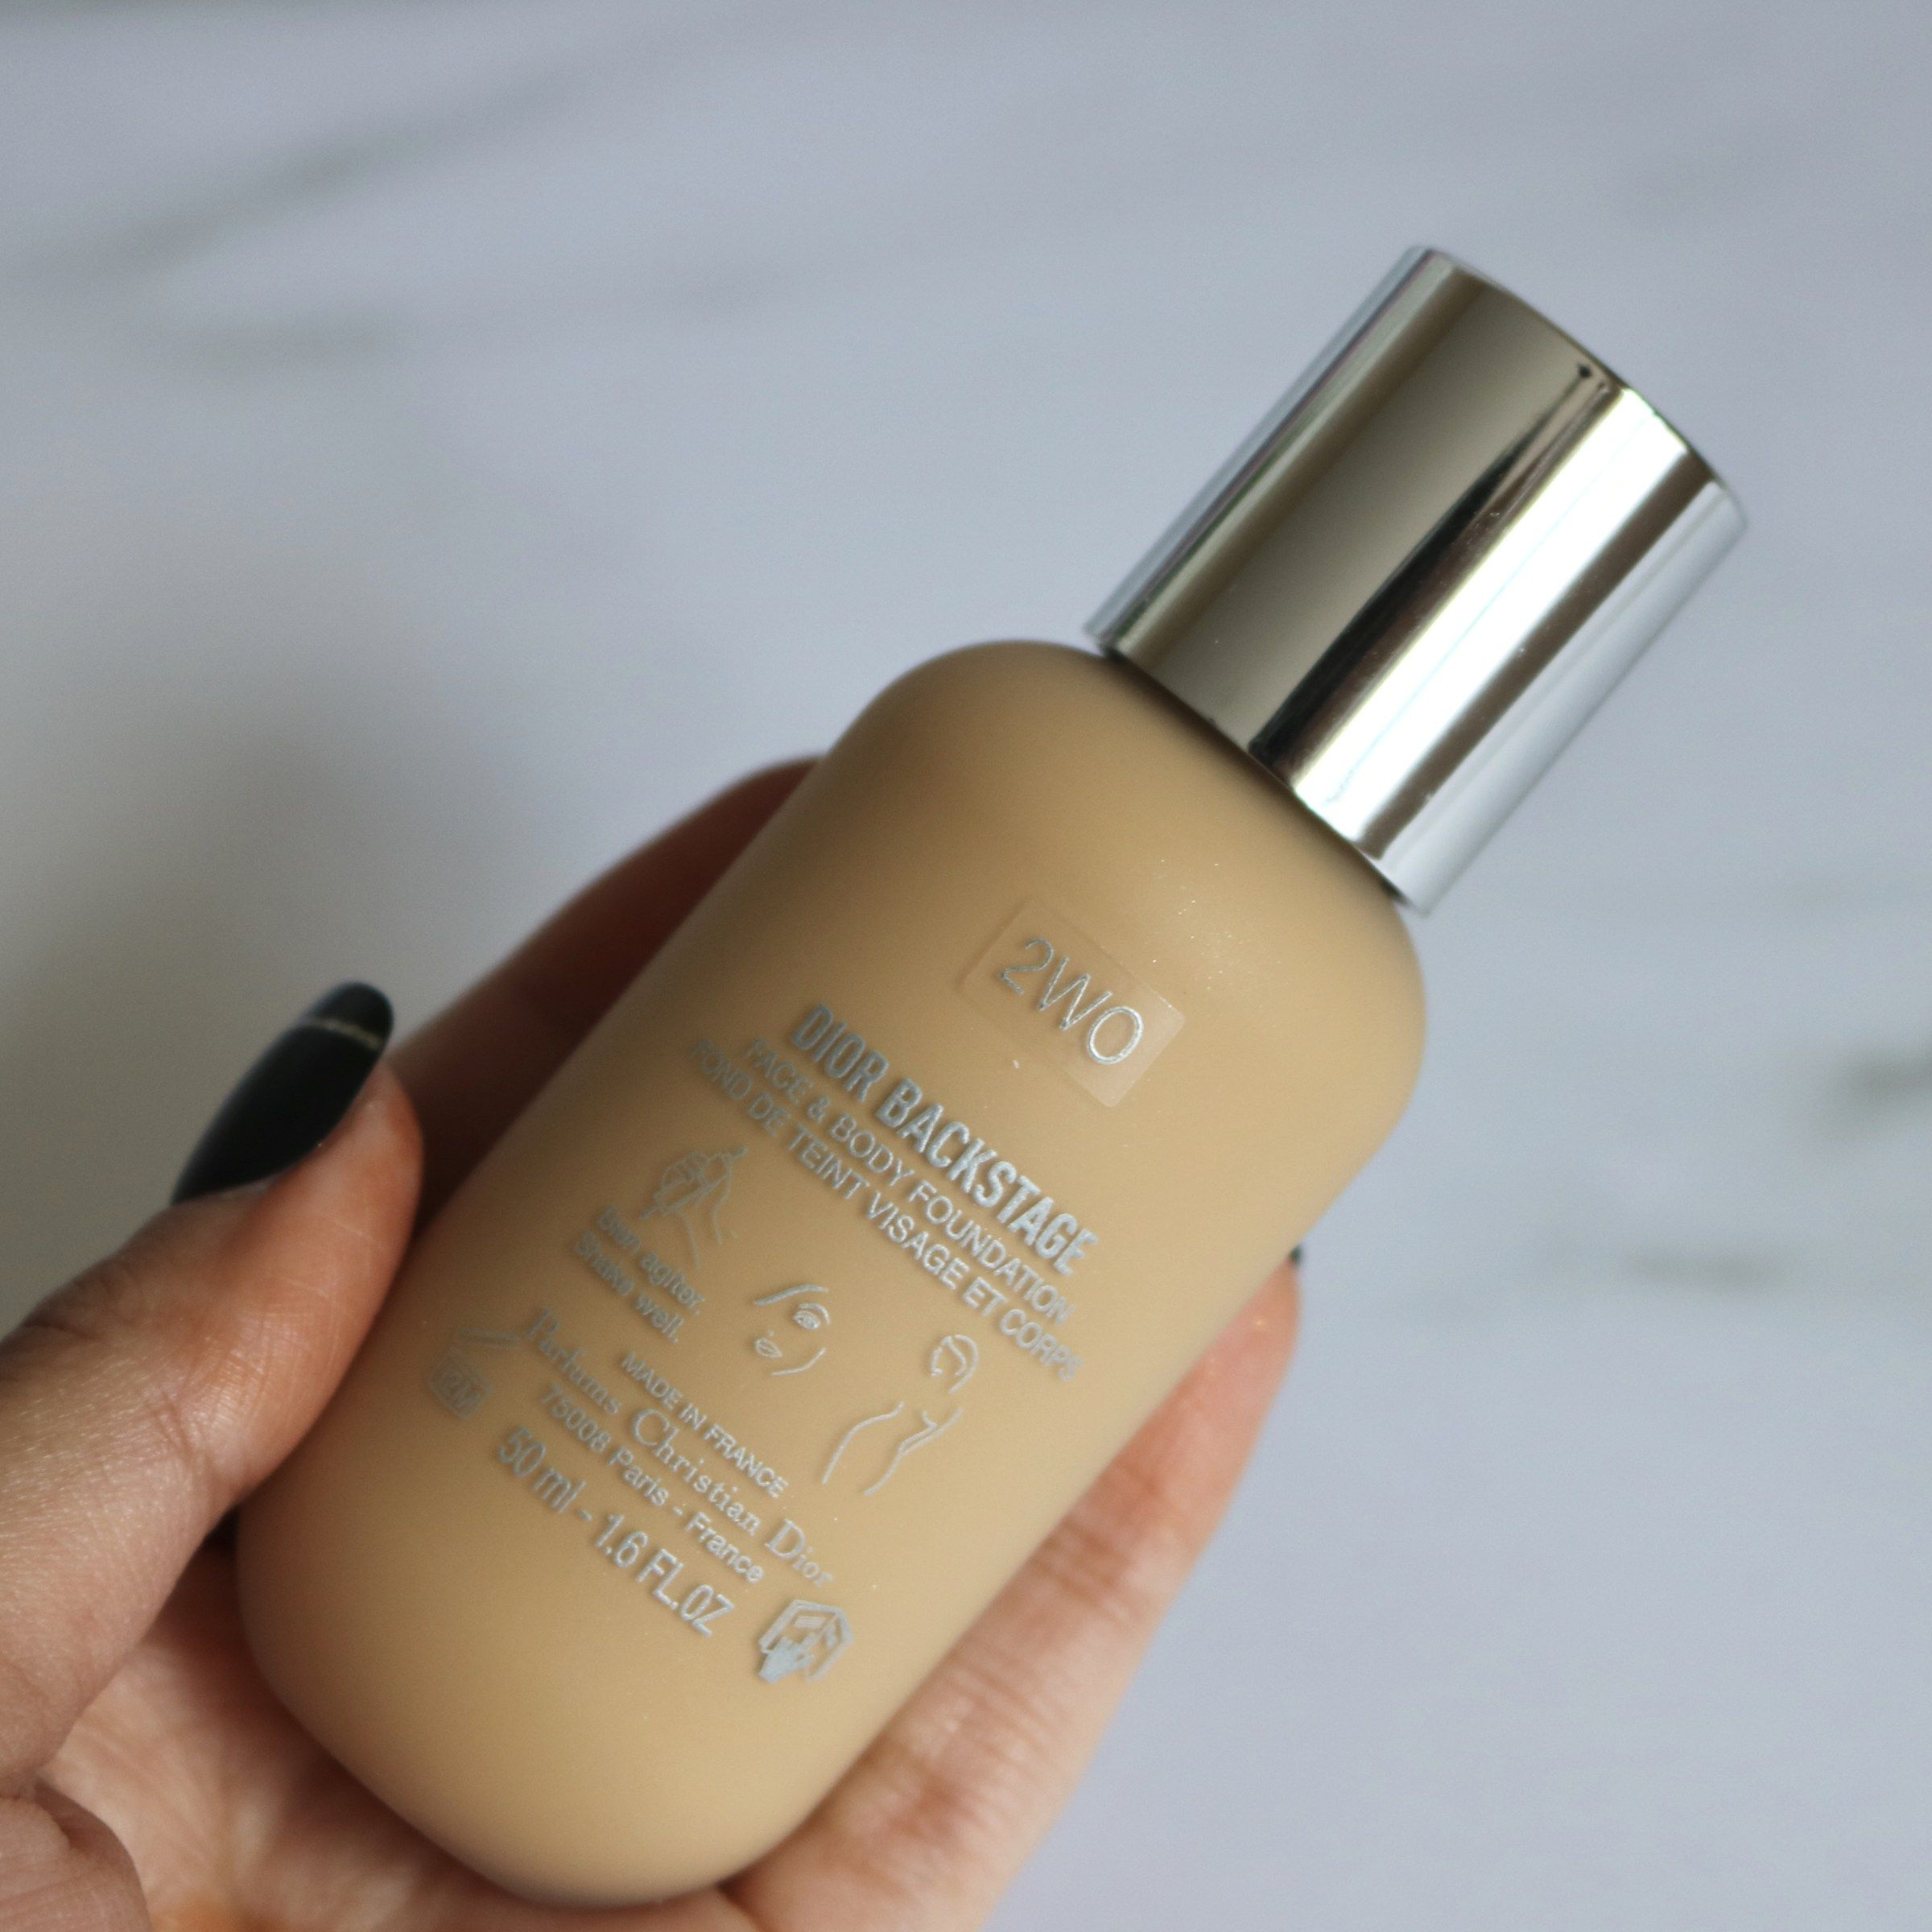 b2c56c85 Dior Backstage Face And Body Foundation (Shade 2WO, Warm Olive ...